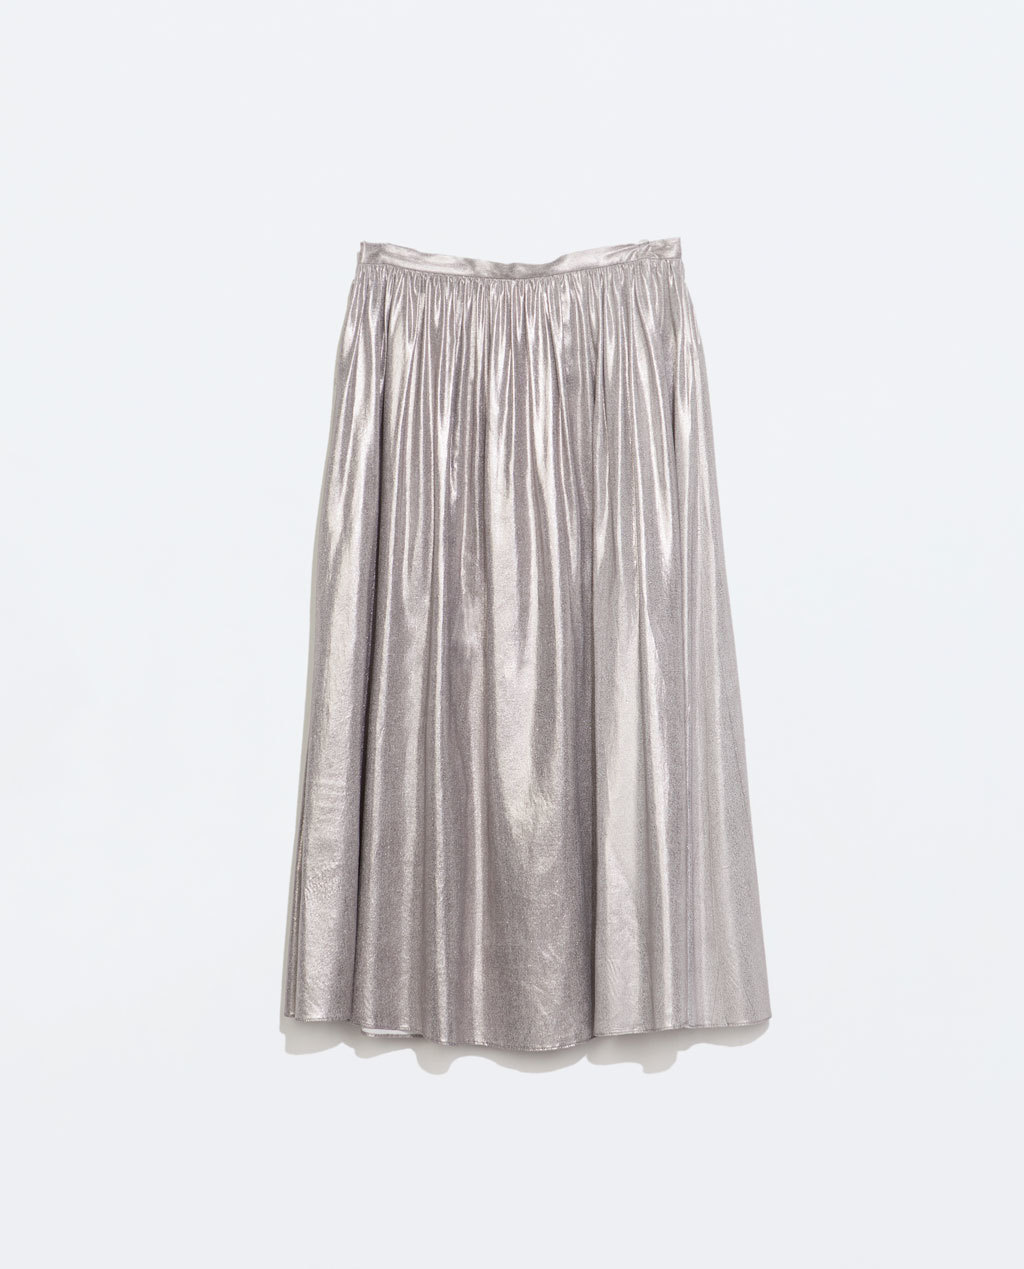 Voluminous Midi Skirt - length: calf length; pattern: plain; style: full/prom skirt; fit: loose/voluminous; waist: high rise; predominant colour: silver; occasions: evening; fibres: viscose/rayon - 100%; hip detail: soft pleats at hip/draping at hip/flared at hip; waist detail: narrow waistband; pattern type: fabric; texture group: other - light to midweight; trends: shimmery metallics; season: s/s 2014